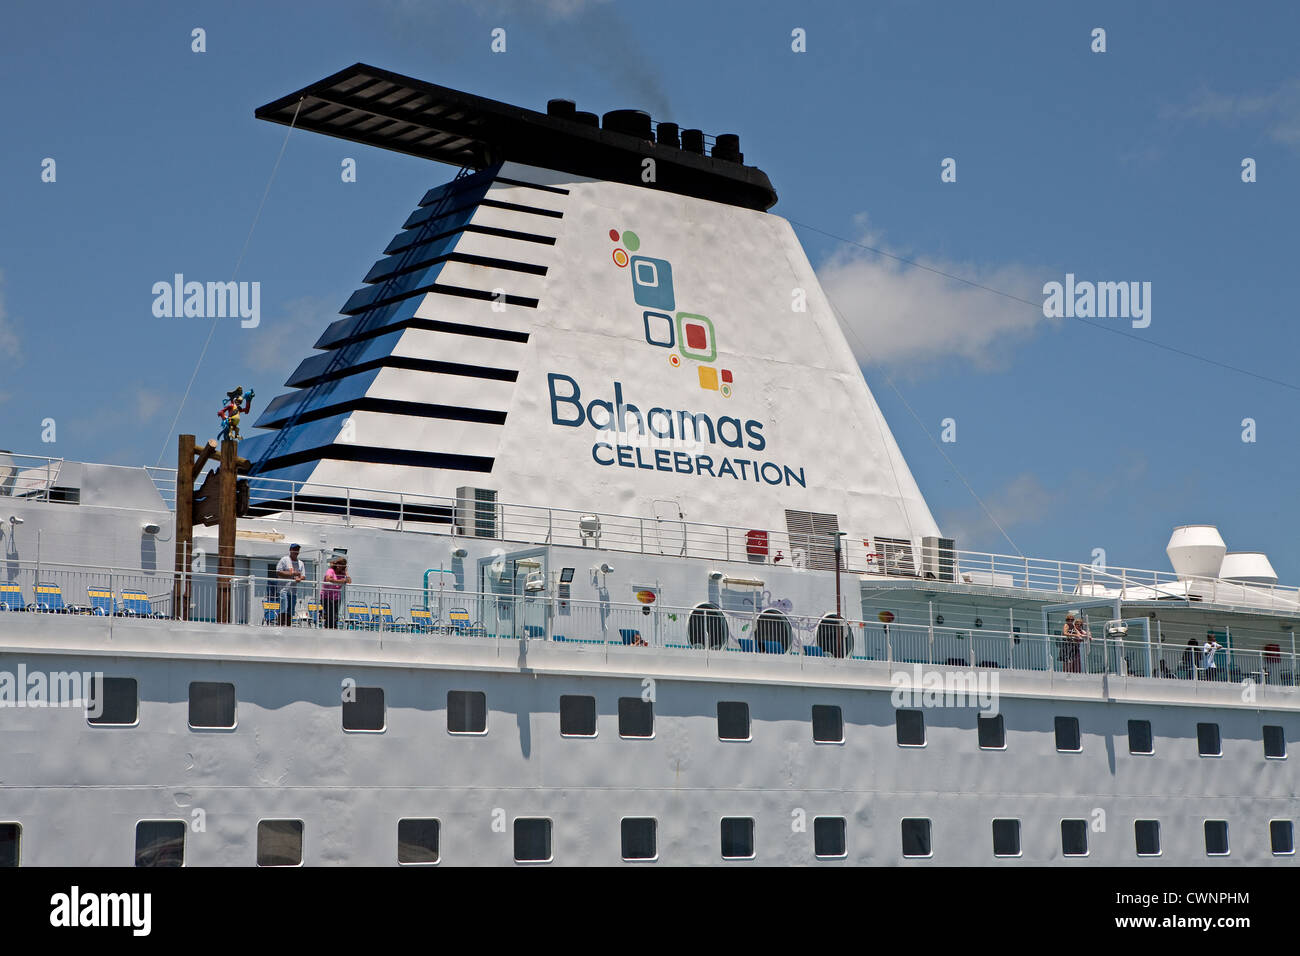 Bahamas Celebration Cruise Line Ship Smoking Funnel Docked In - Is there smoking on cruise ships